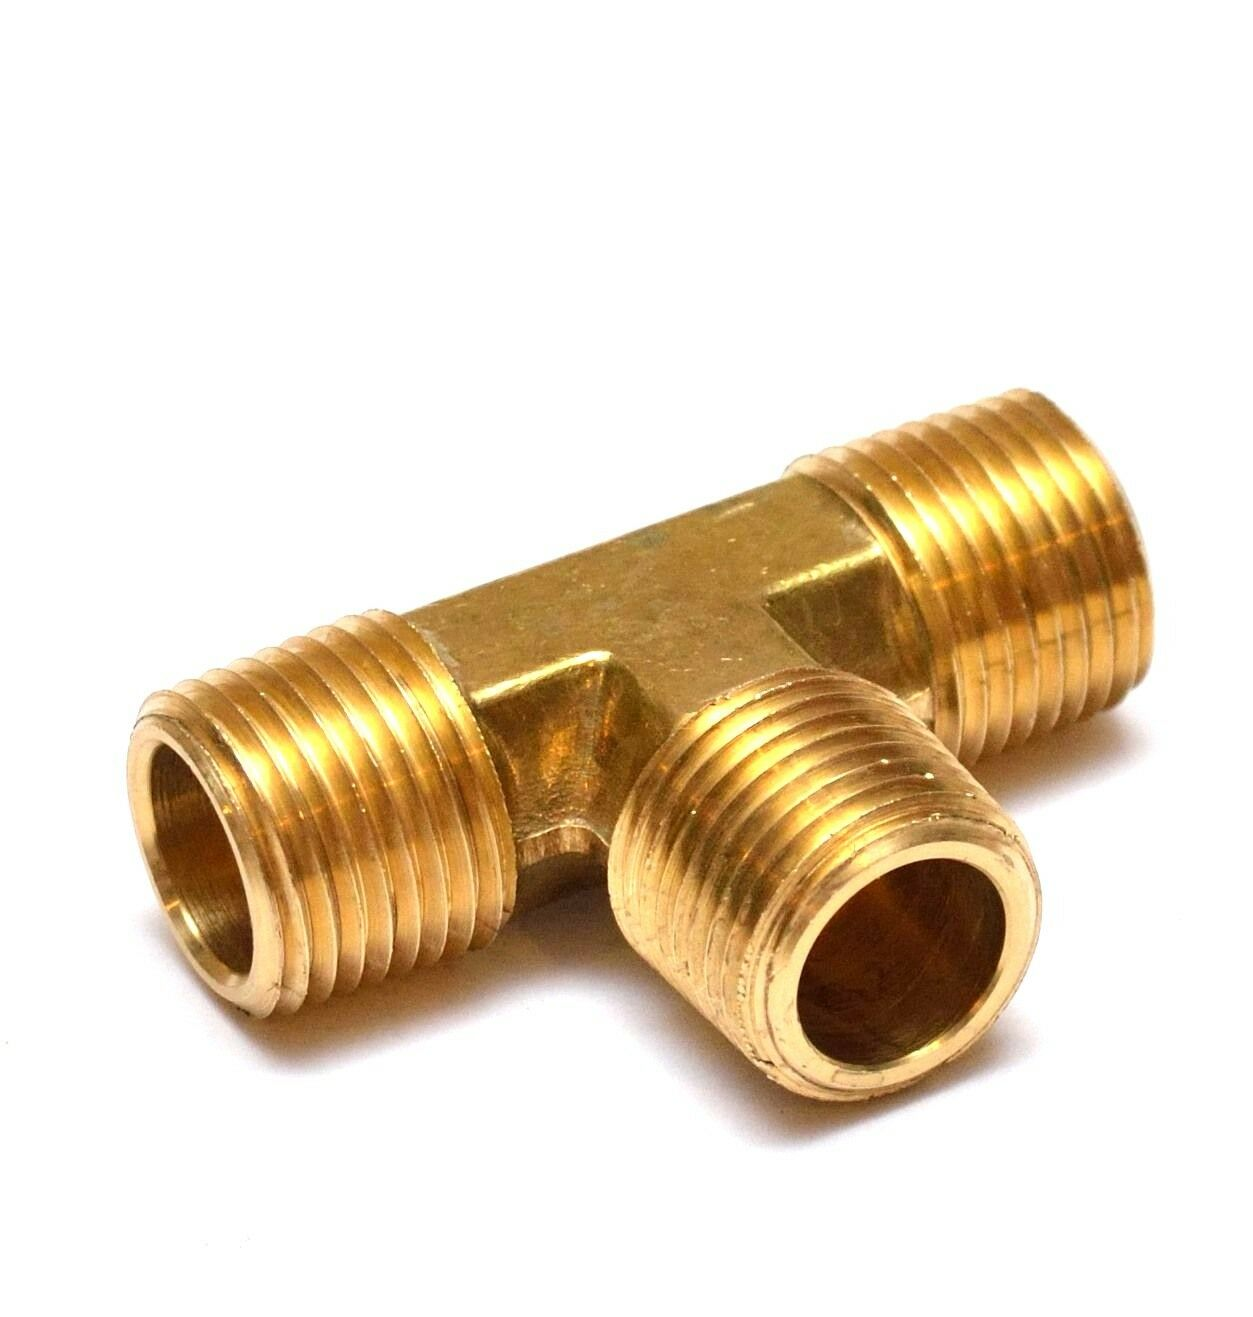 1/2& NPT MALE Tee Brass Pipe Fitting Fuel, Air, Water, Oil